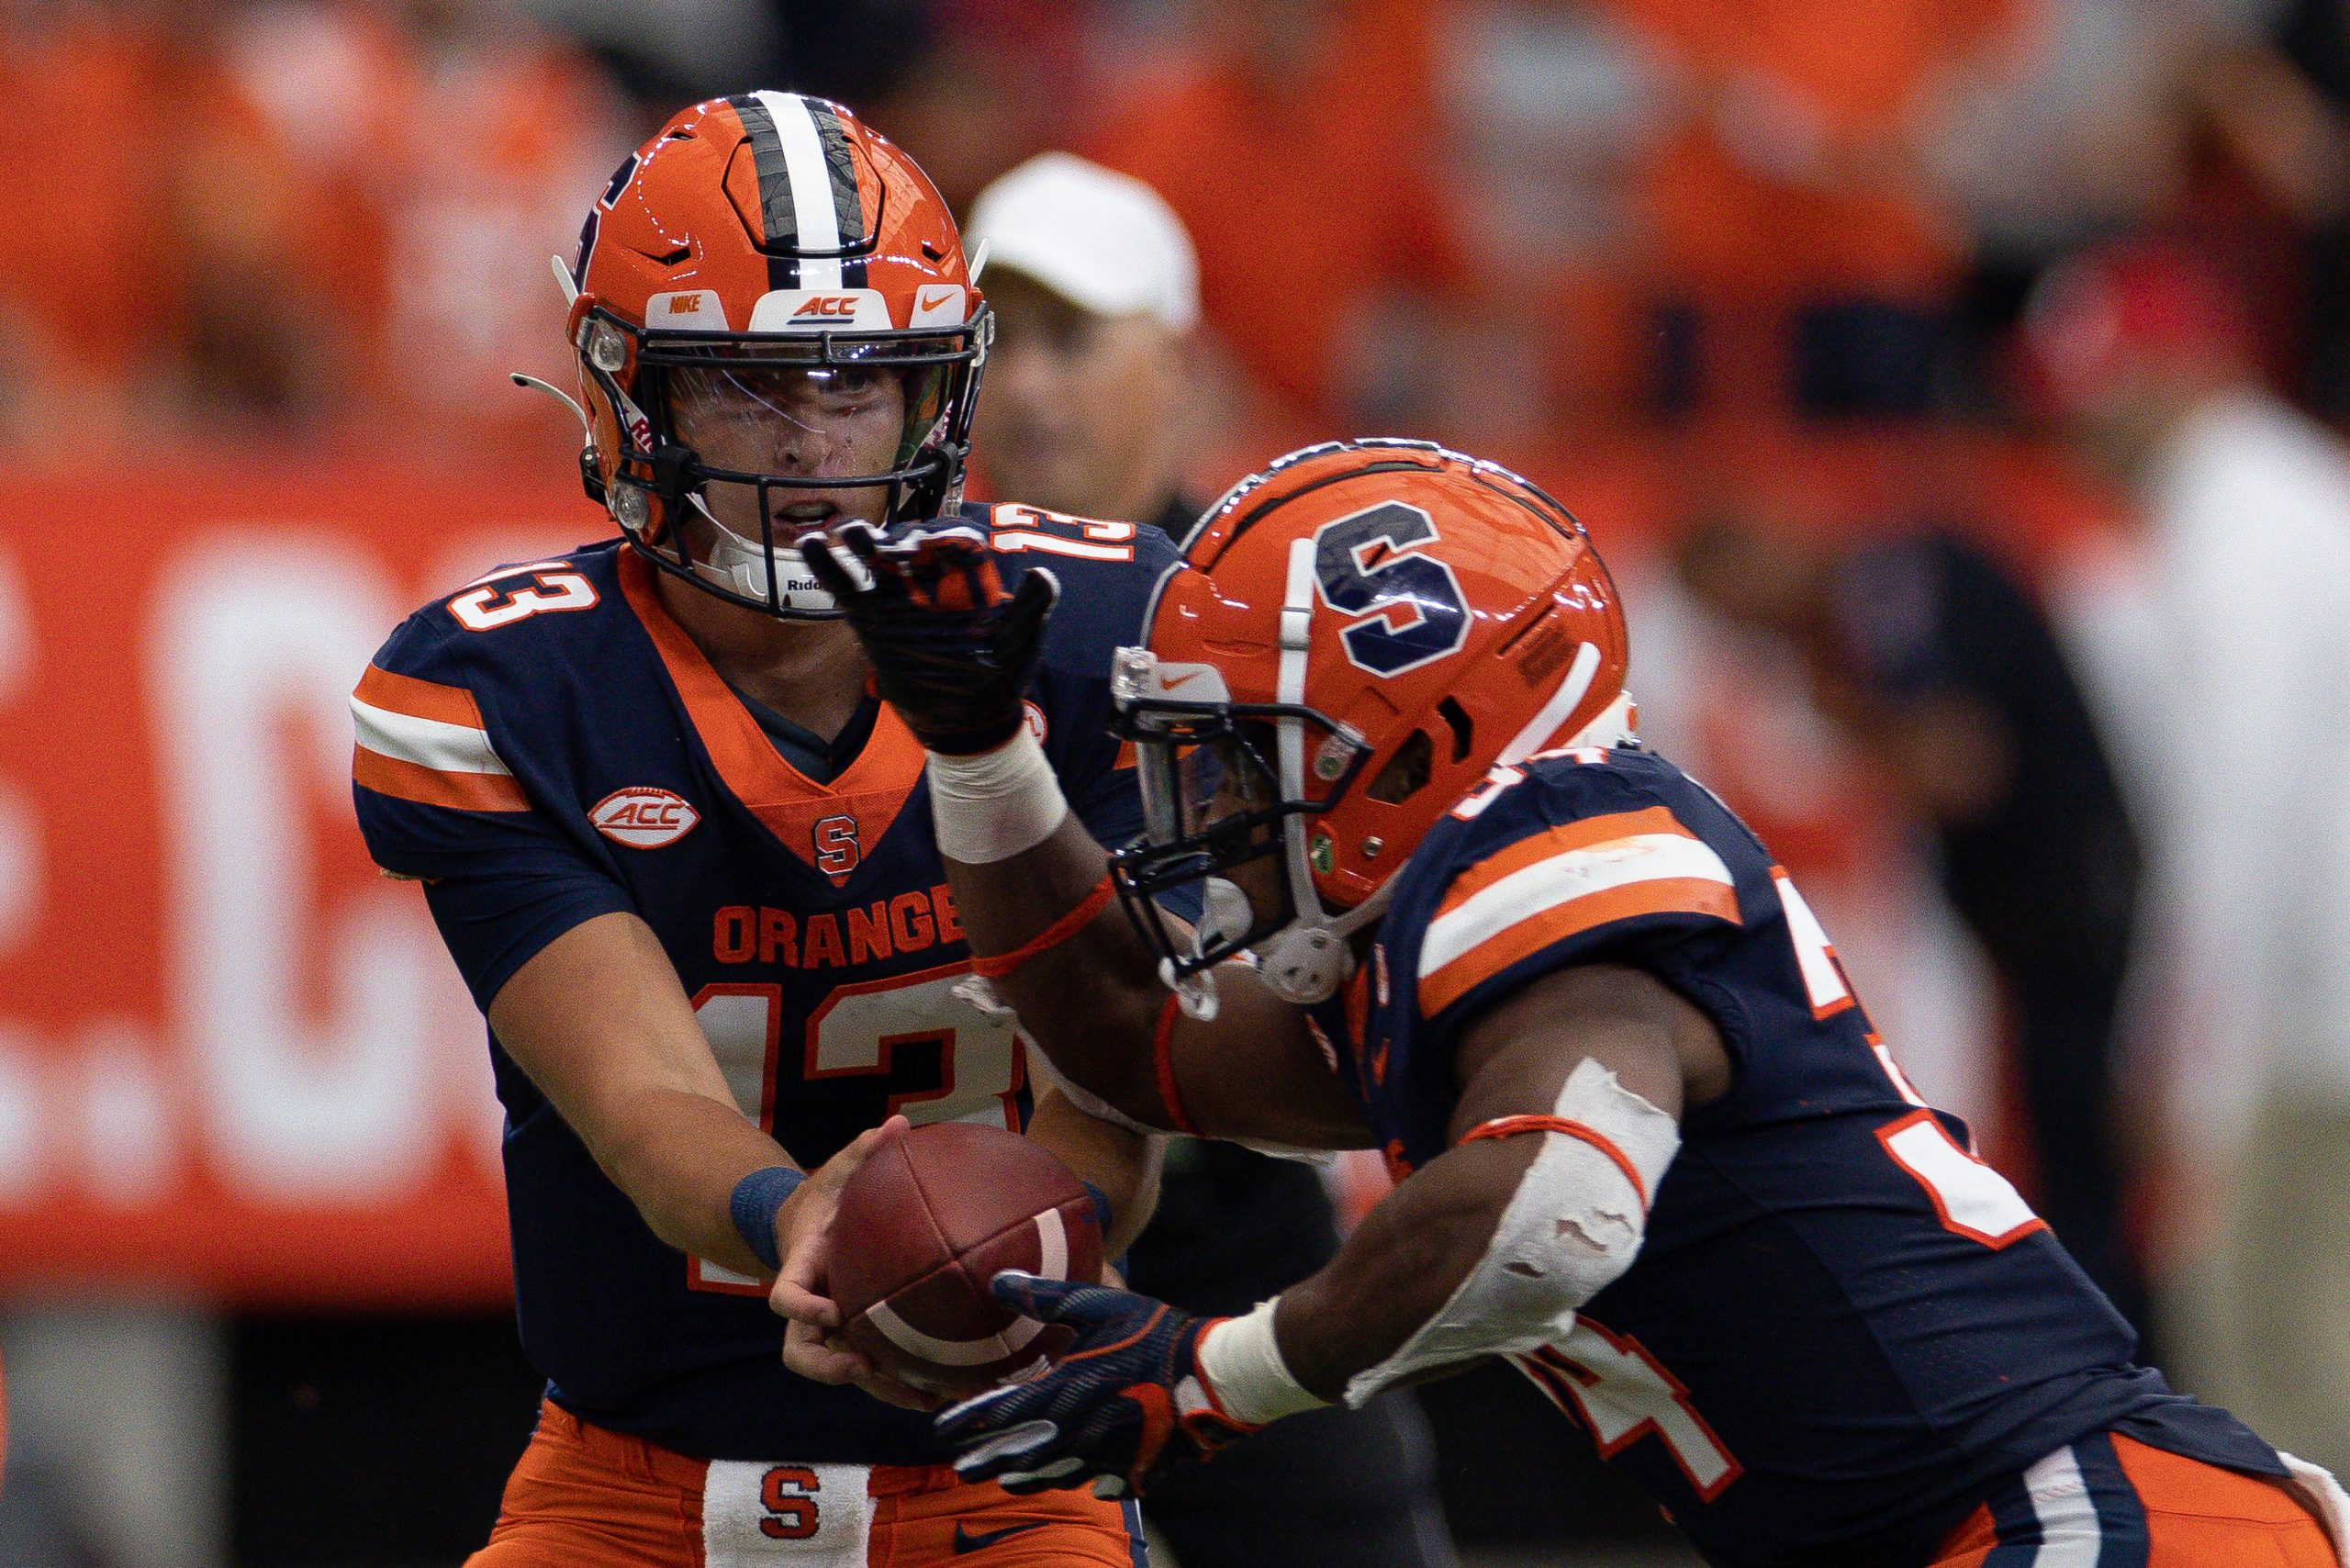 Syracuse's Tommy DeVito (13) hands the ball off to Sean Tucker during an NCAA football game against Rutgers, Saturday, at the Carrier Dome.